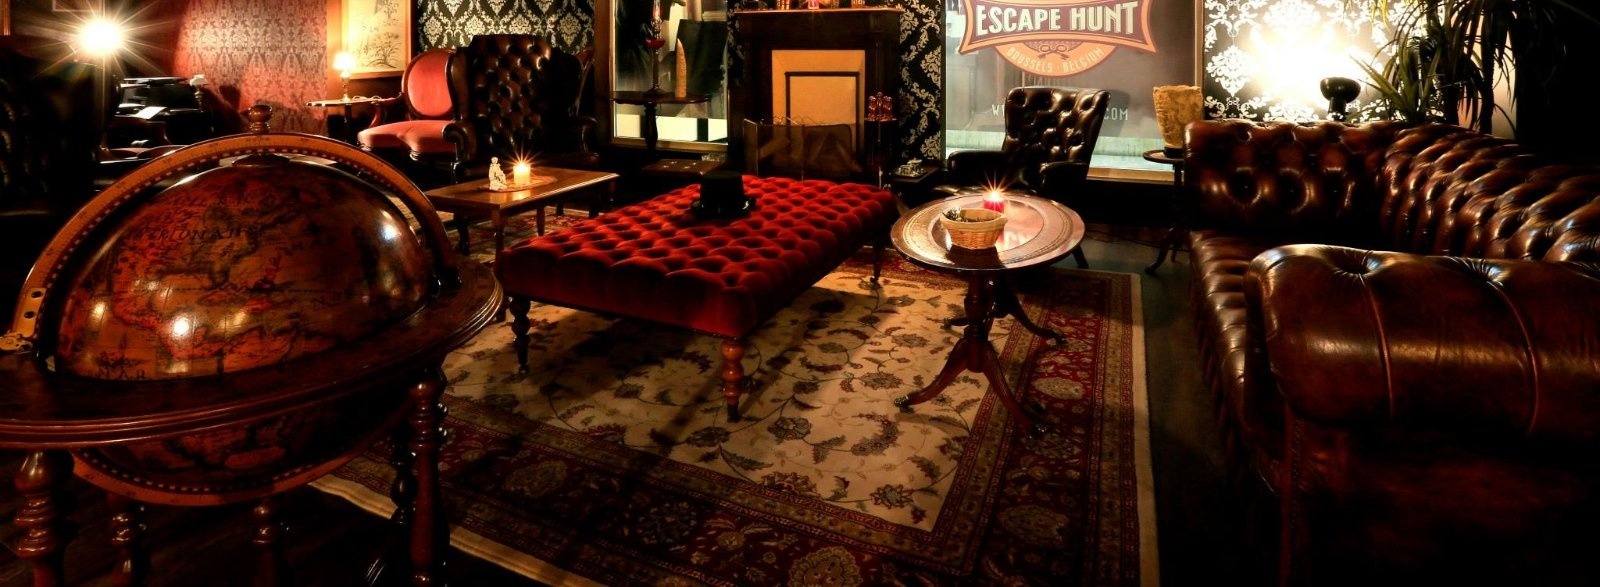 The Great Escape Room Qatar